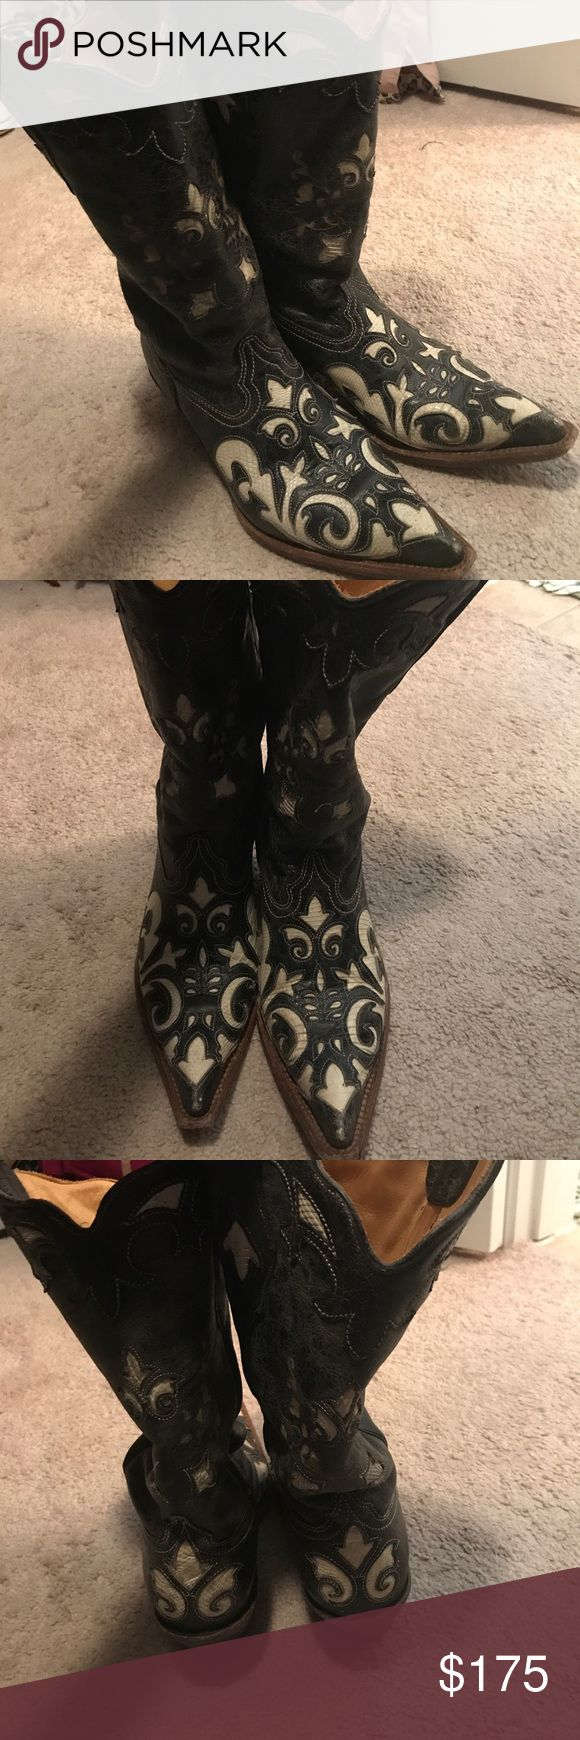 Women's corral boots Black and white distressed boots. Slightly worn but still in good condition! Size 8 but I can wear 7.5 or 8 depending on the shoe. Make an offer! corral Shoes Heeled Boots